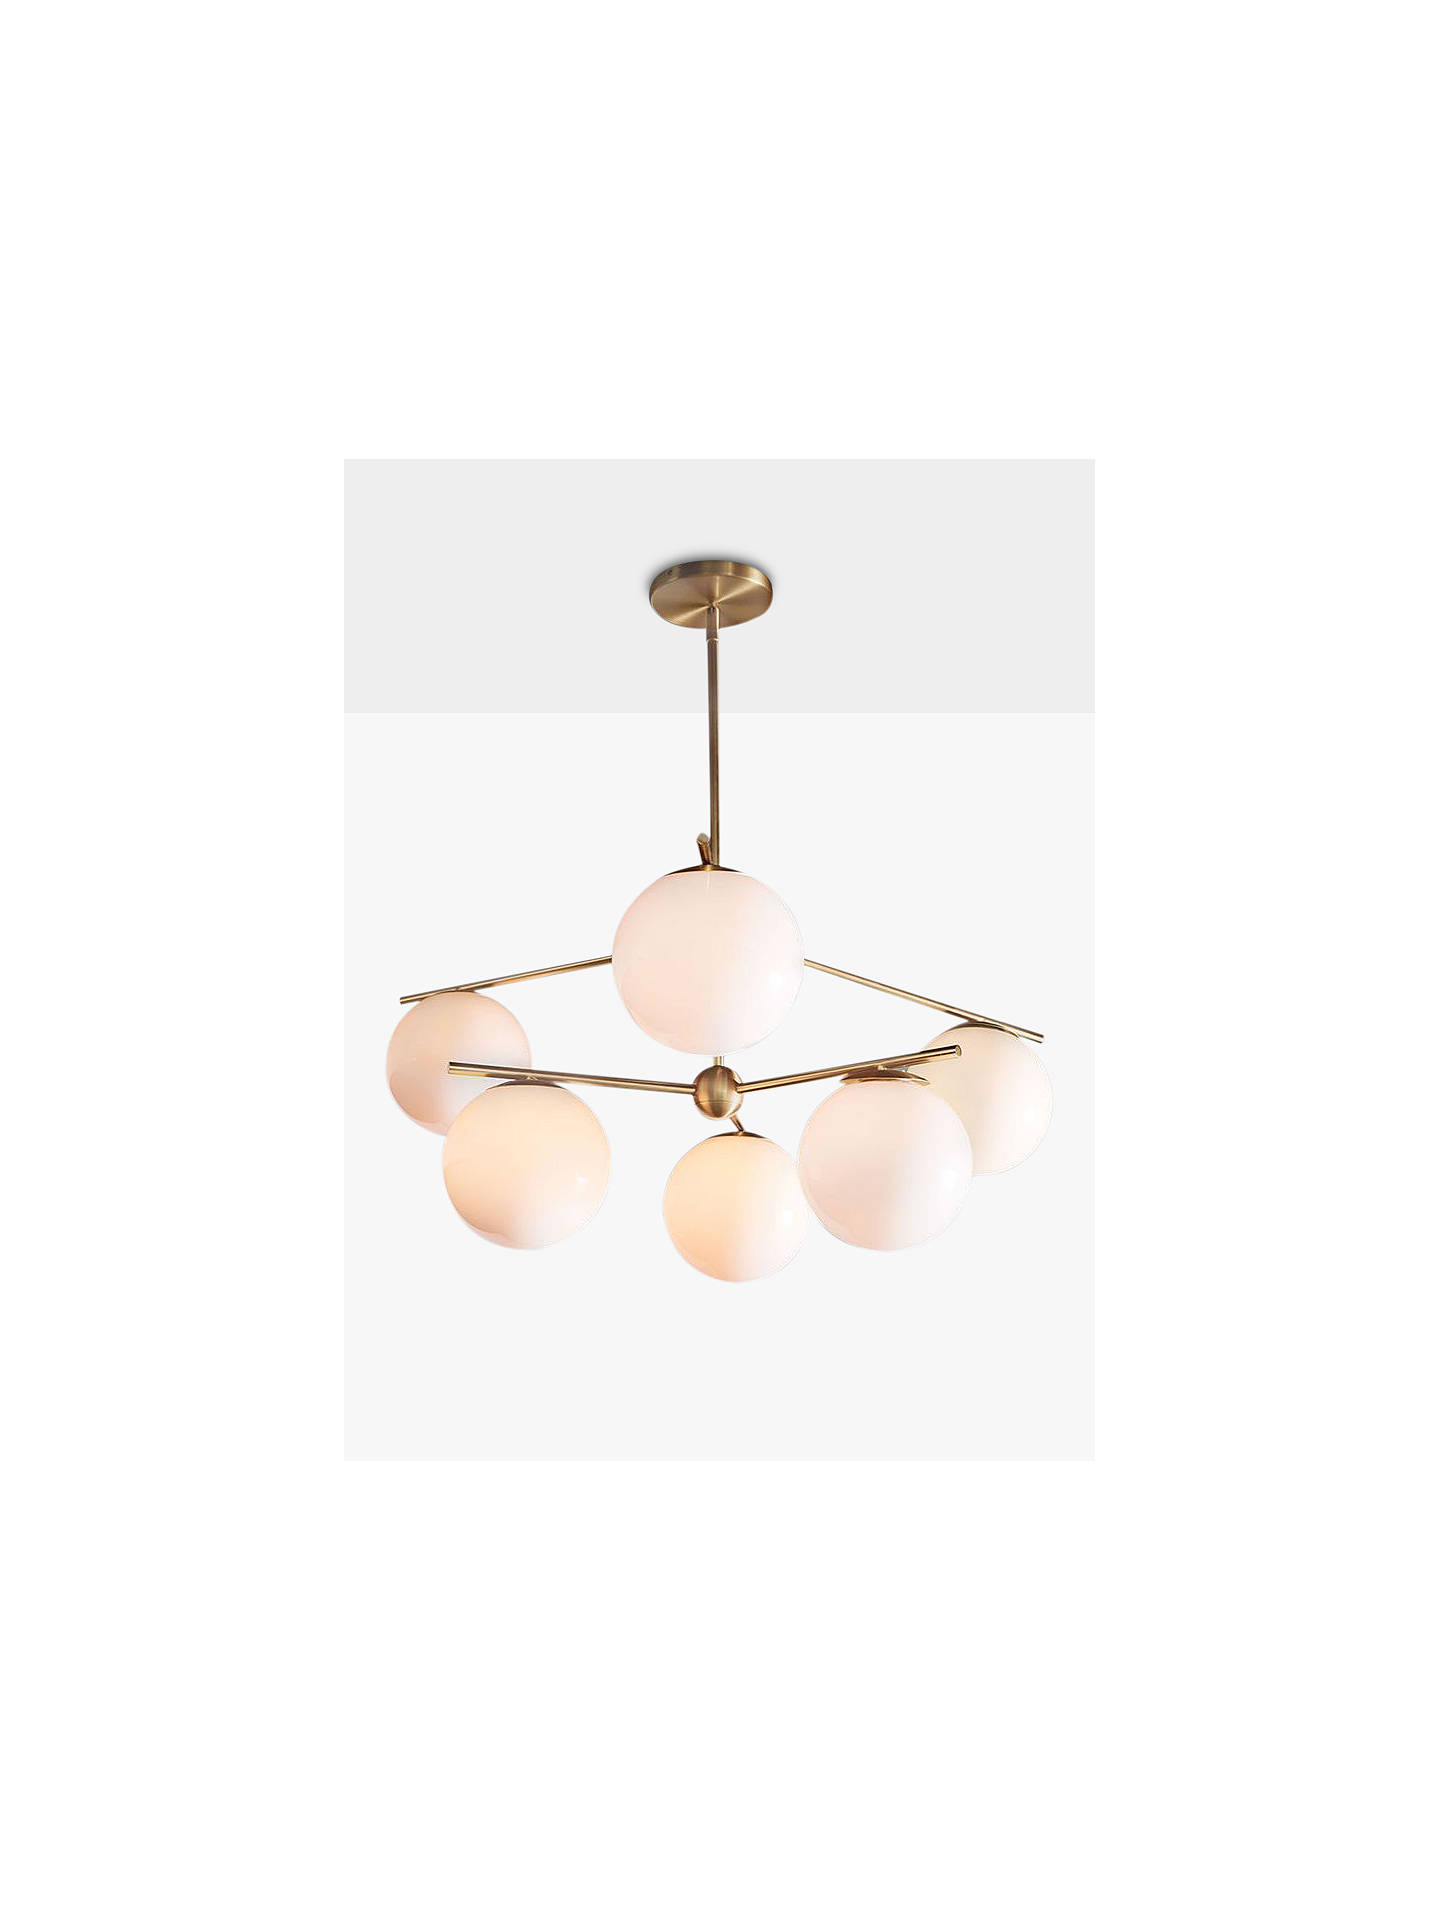 West Elm Sphere Stem Ceiling Light Brass